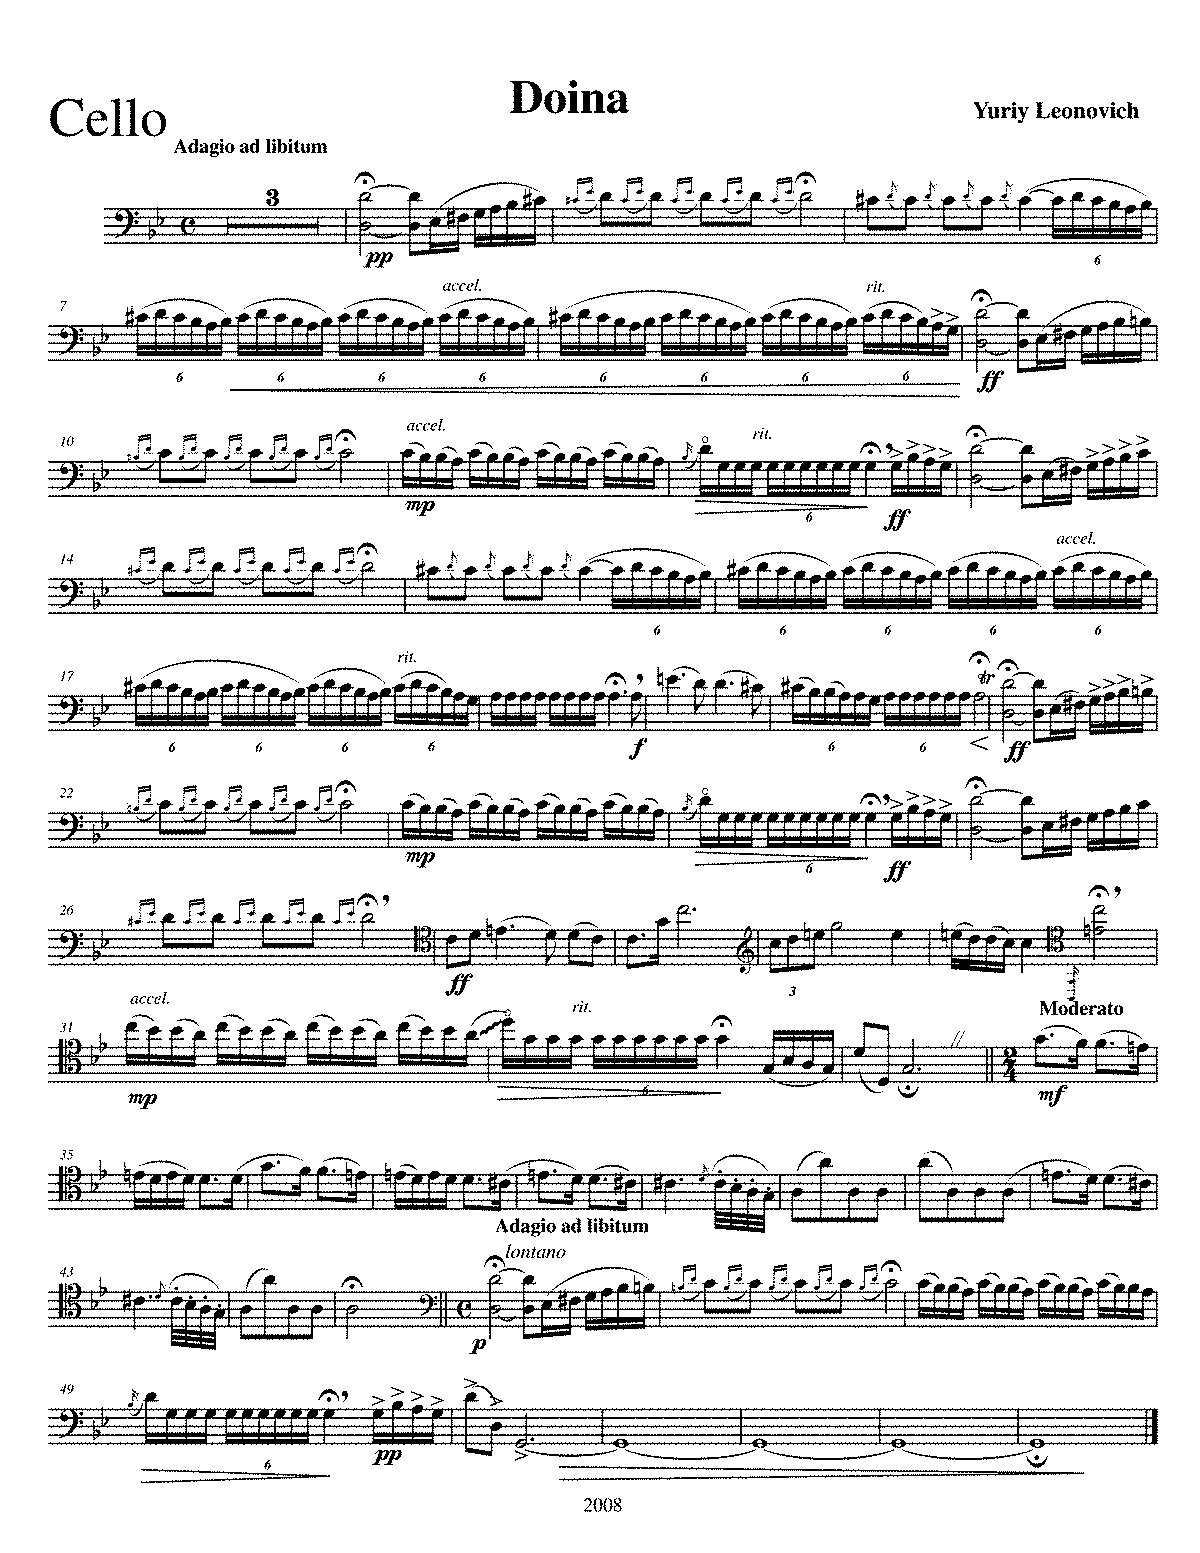 PMLP45711-Doina - Cello.pdf